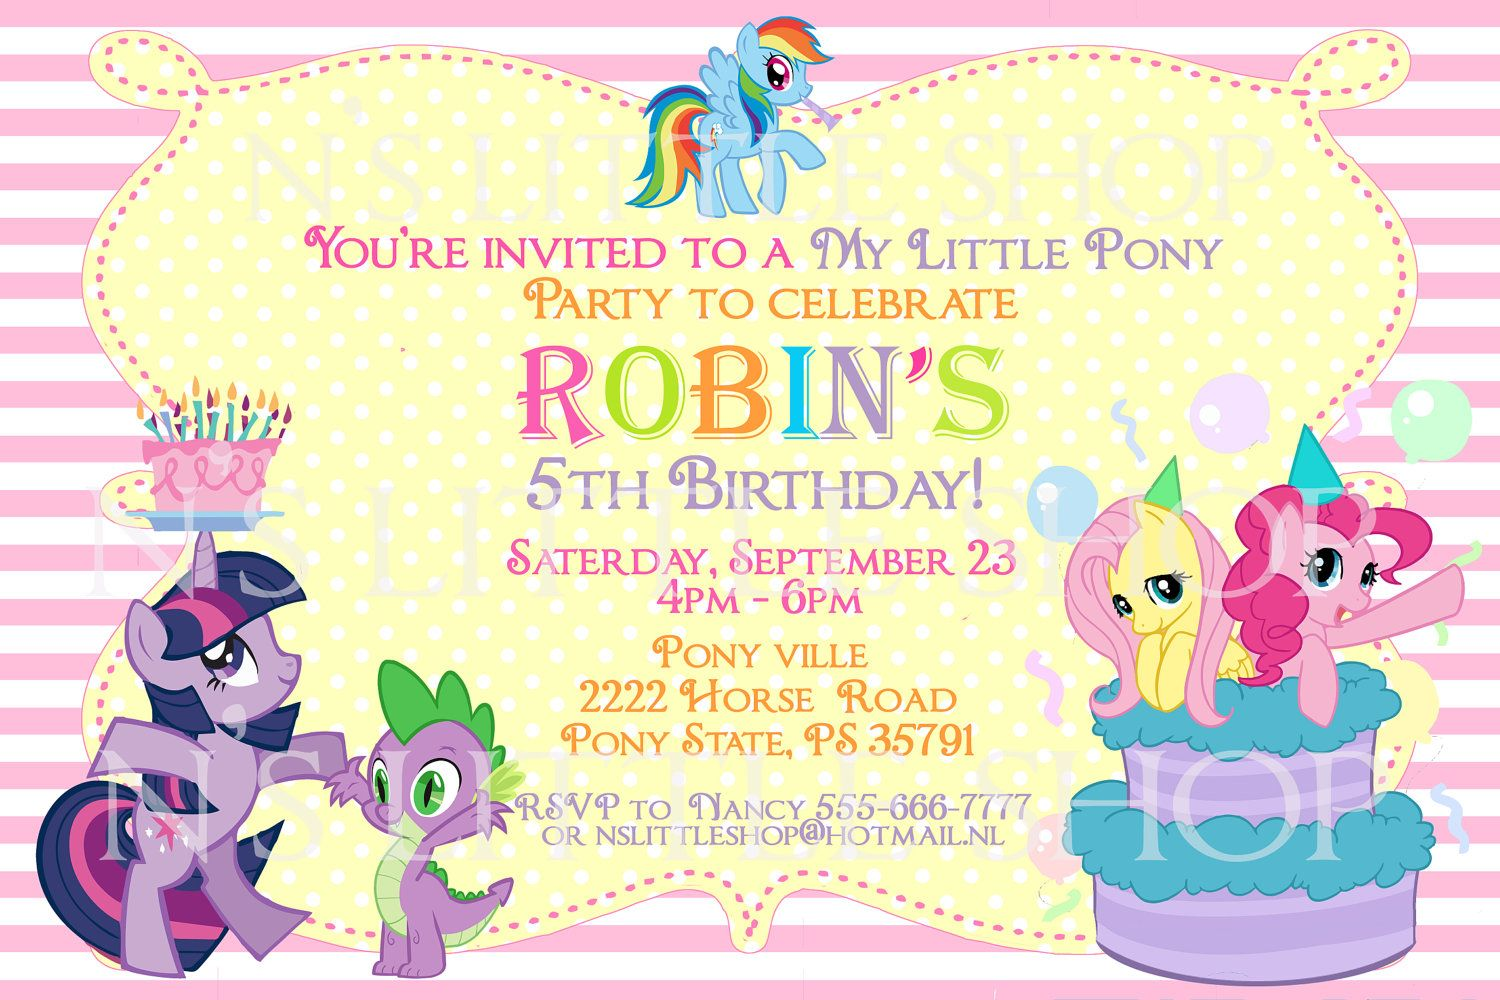 My Little Pony Invitation Idea My Little Pony Party Little Pony Party My Little Pony Invitations